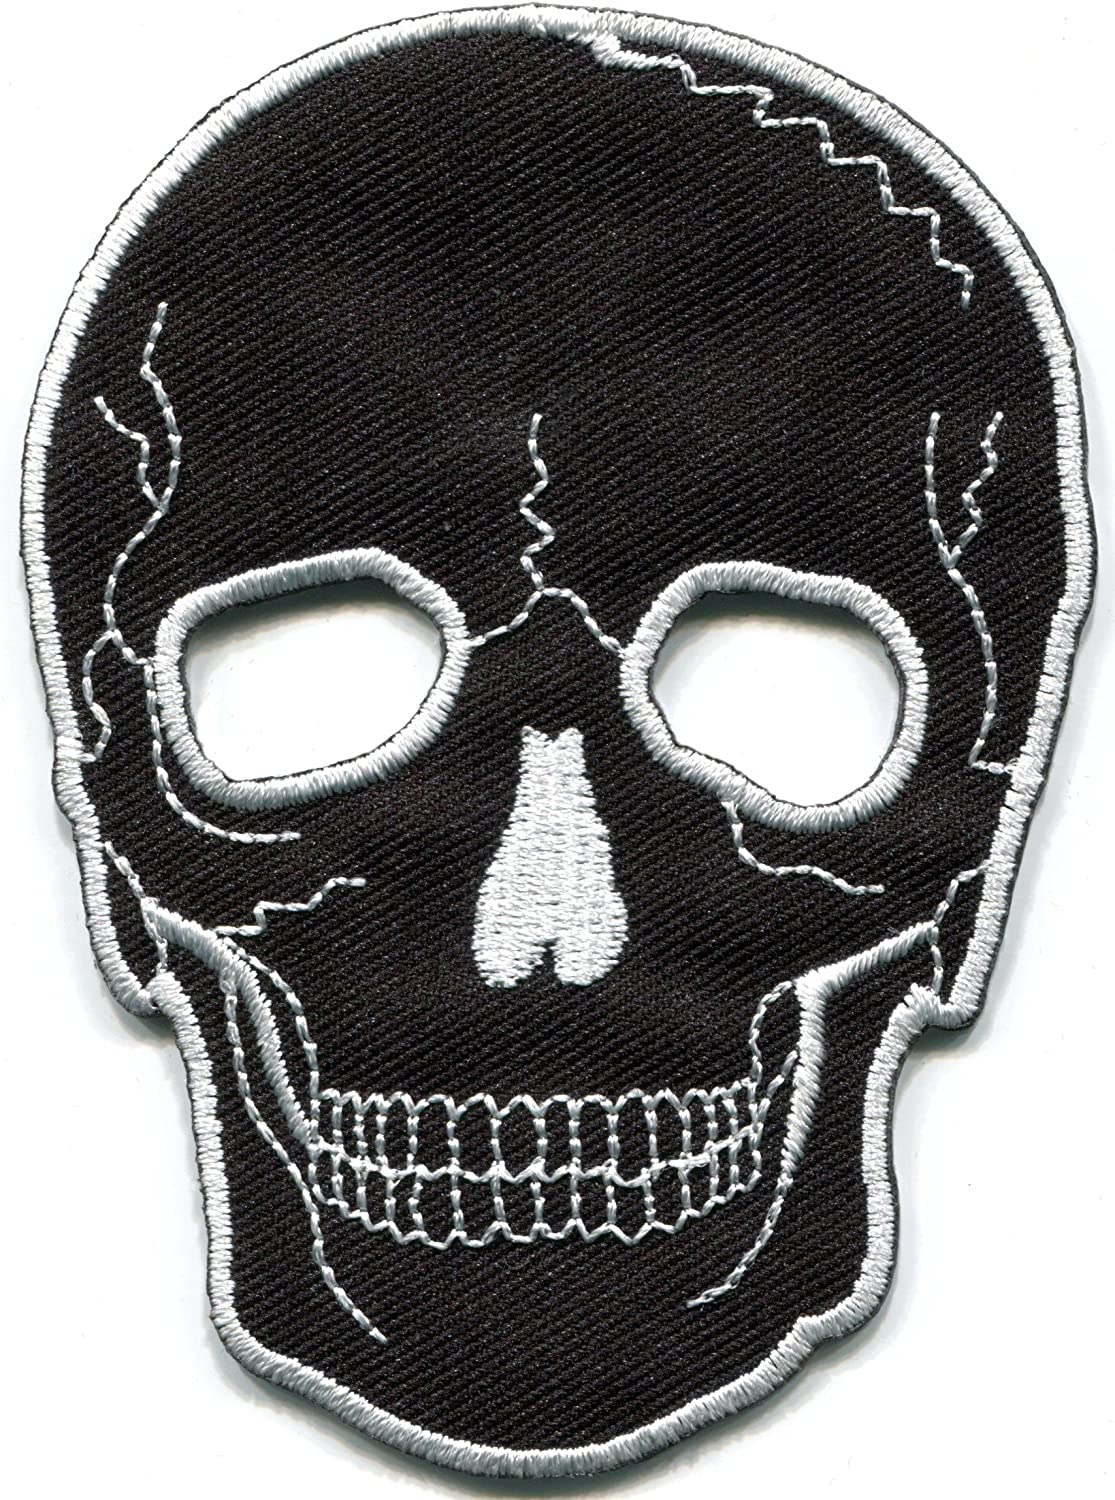 Skull tattoo horror biker goth emo punk rock metal embroidered applique iron-on patch new by TKPatch